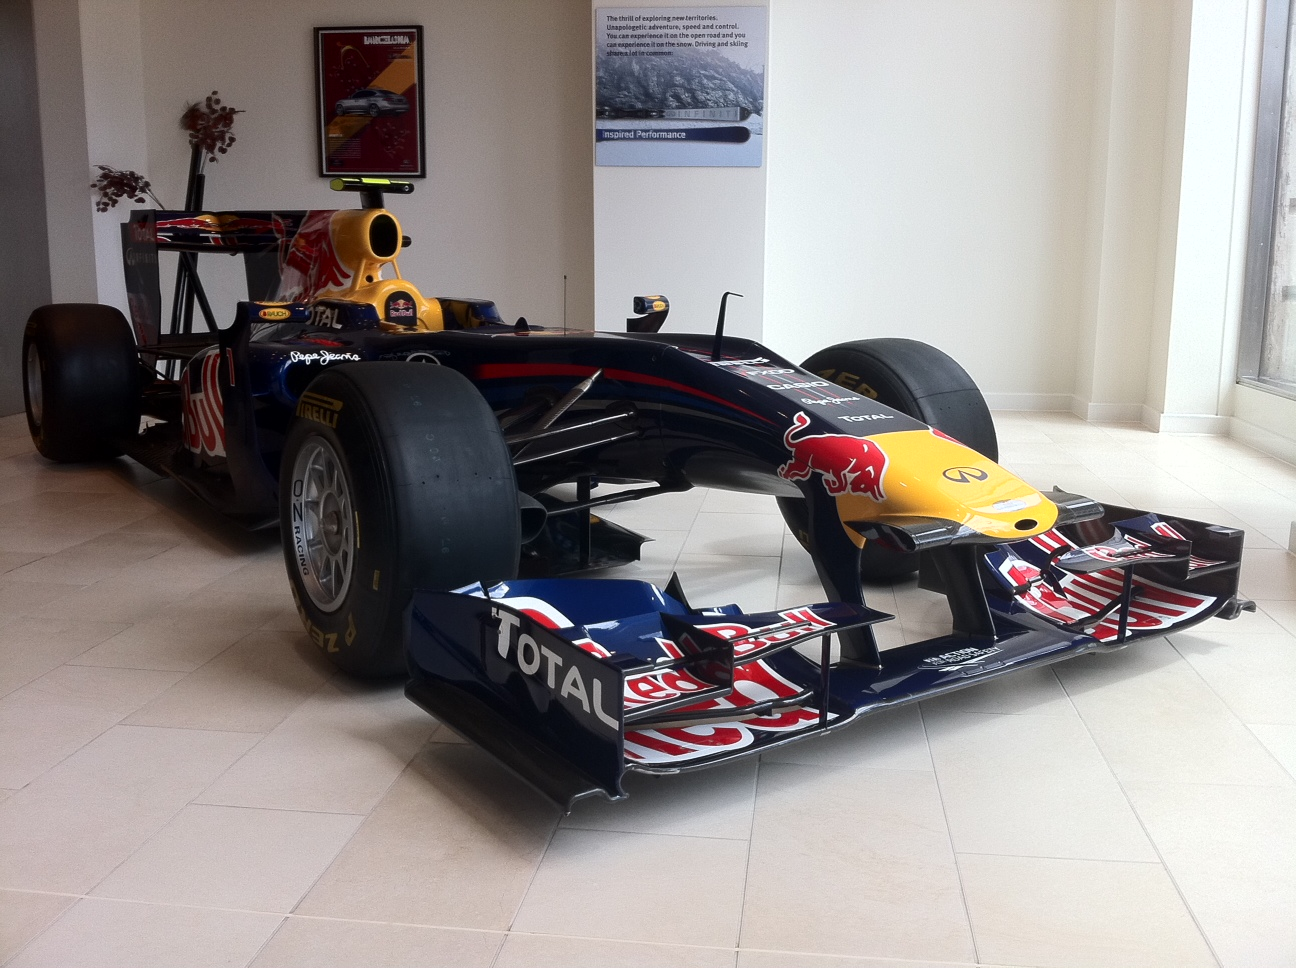 vettel-2010-f1-car-rb6-in-mayfair-london-front